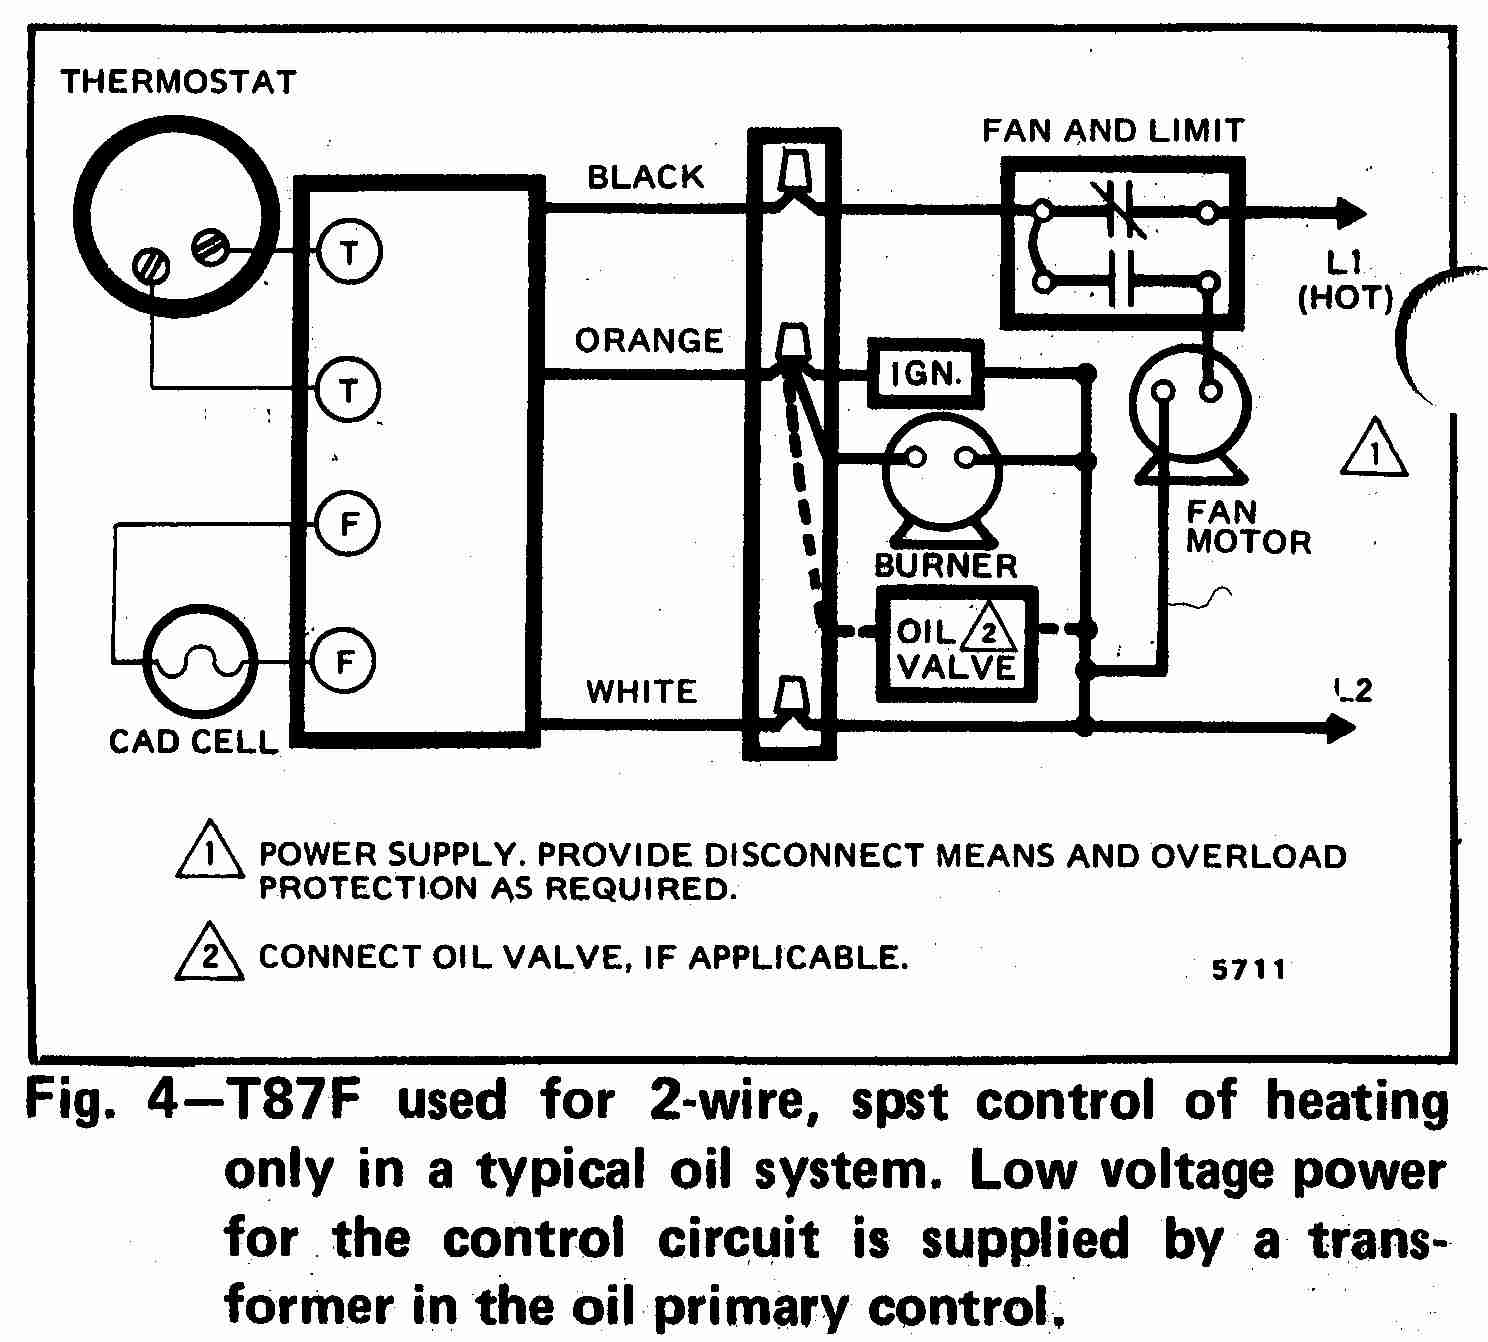 TT_T87F_0002_2W_DJF room thermostat wiring diagrams for hvac systems furnace wiring diagrams at soozxer.org